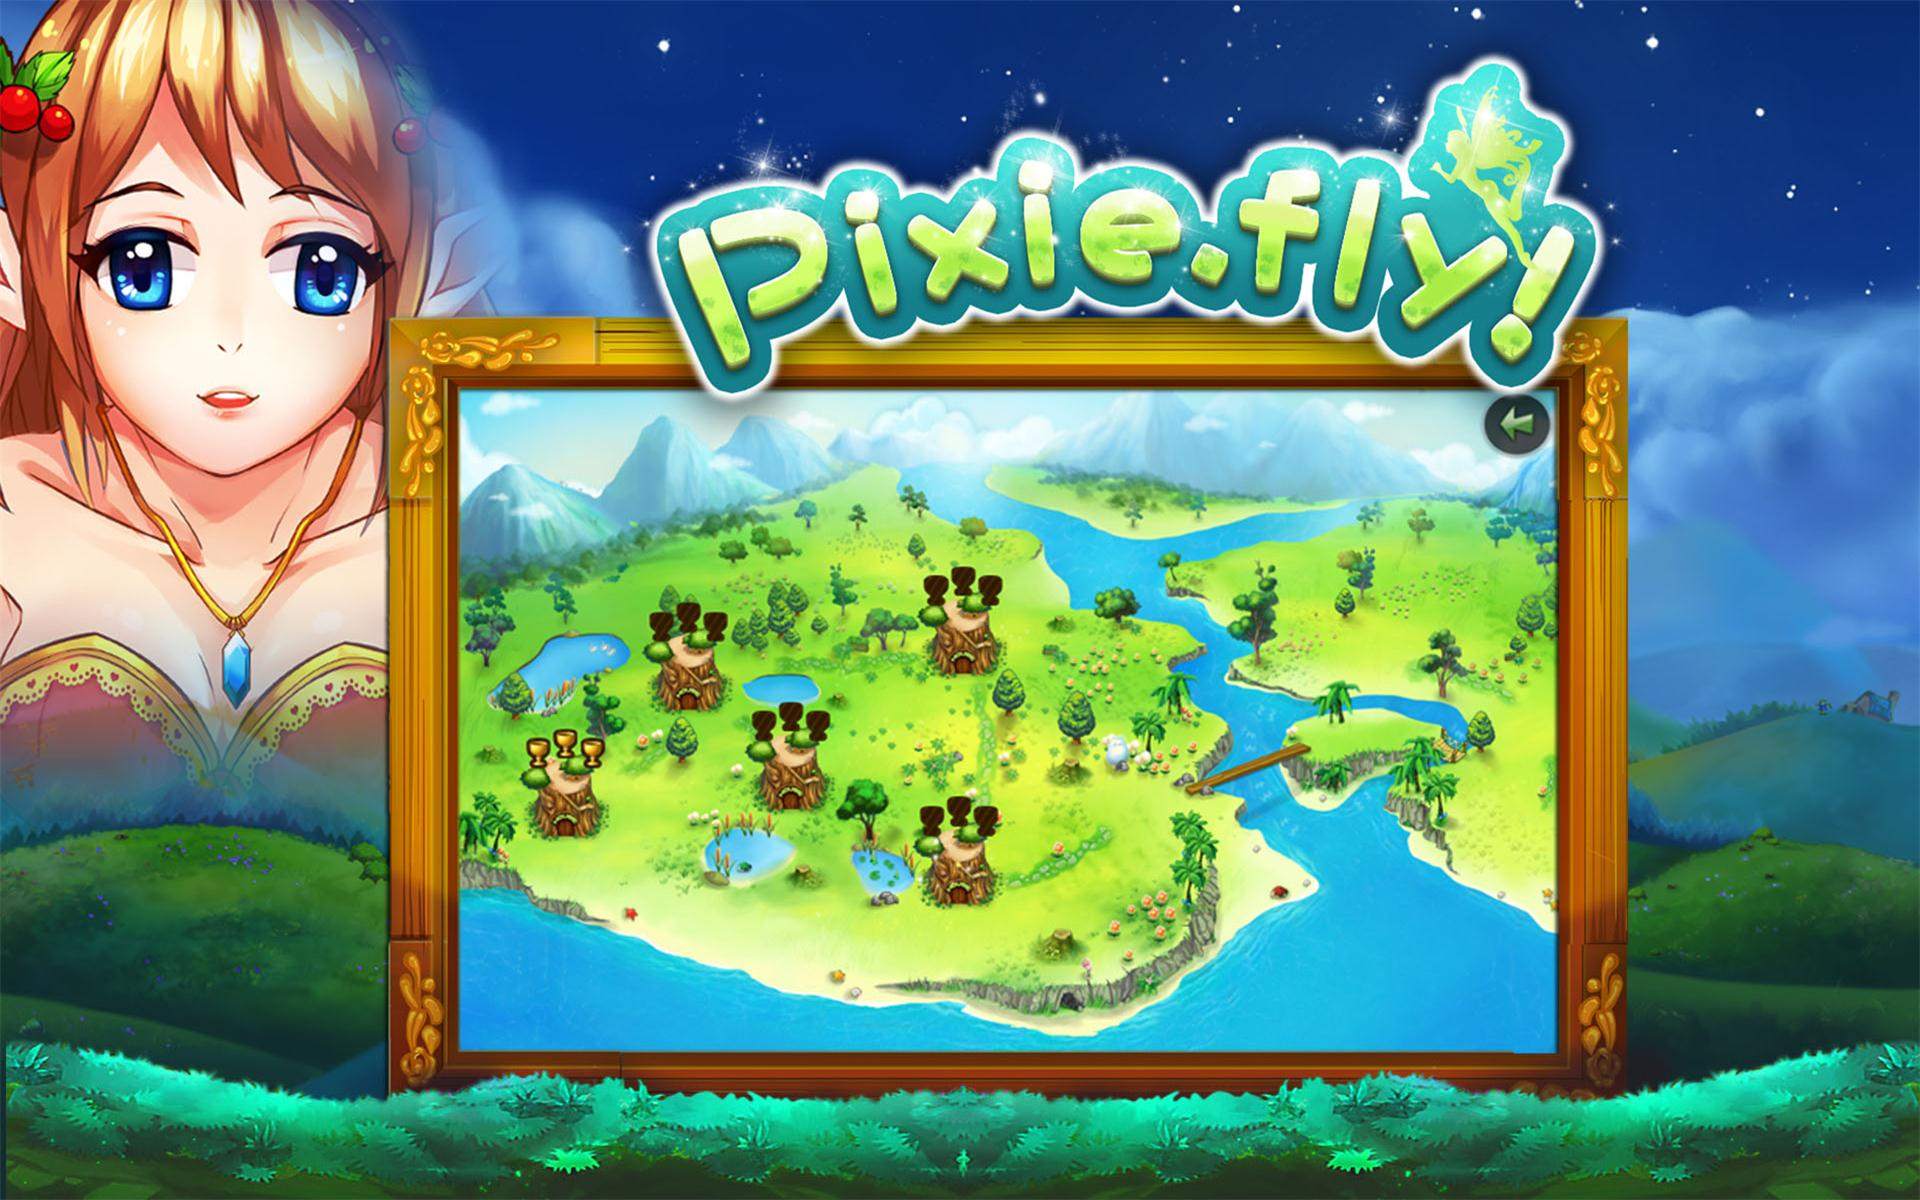 pixie uff0cfly uff01  amazon fr  appstore pour android